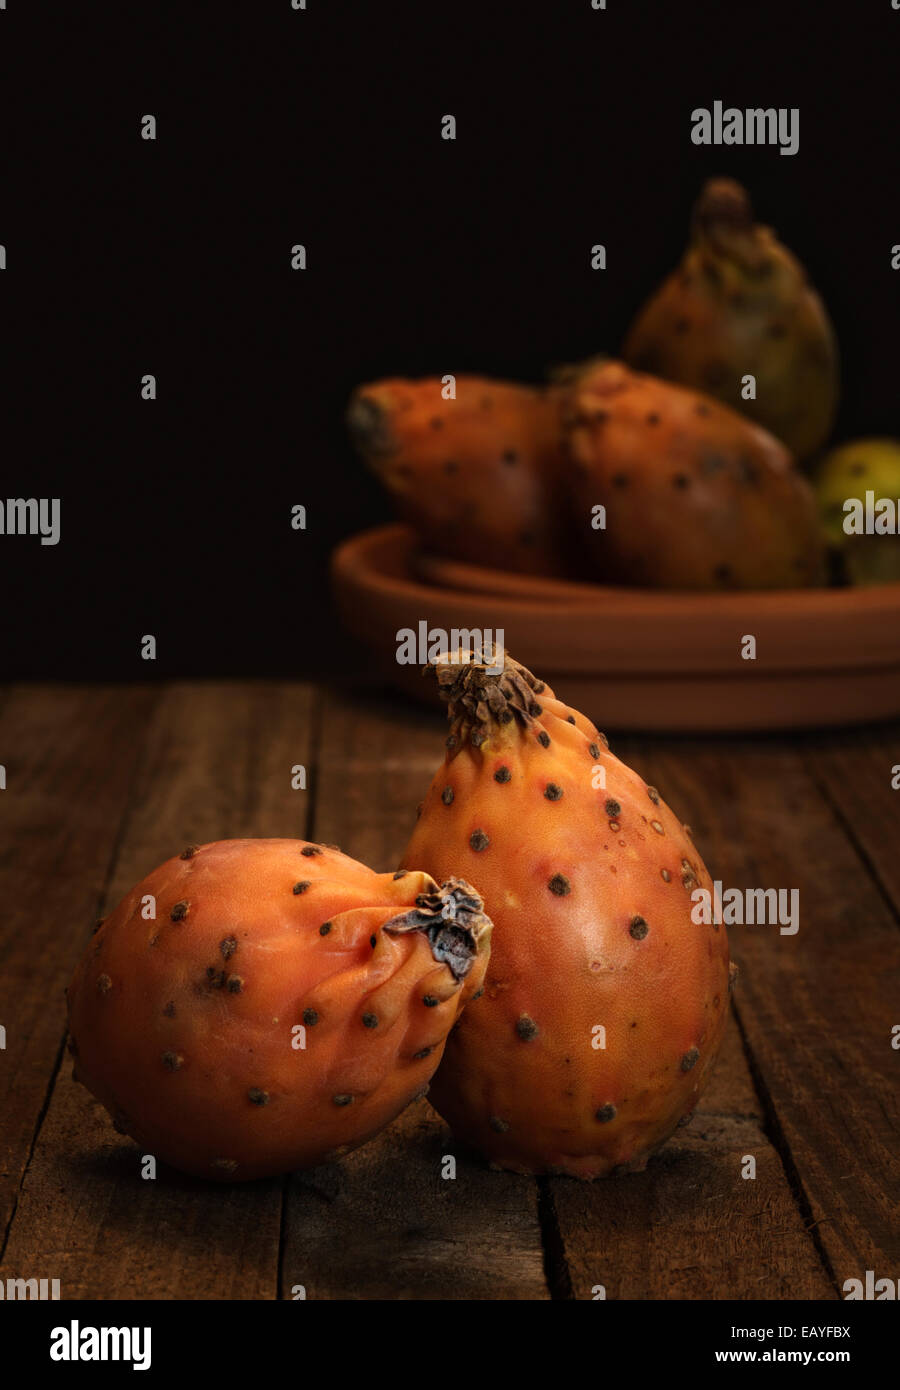 Prickly Pears on wooden Table - Stock Image